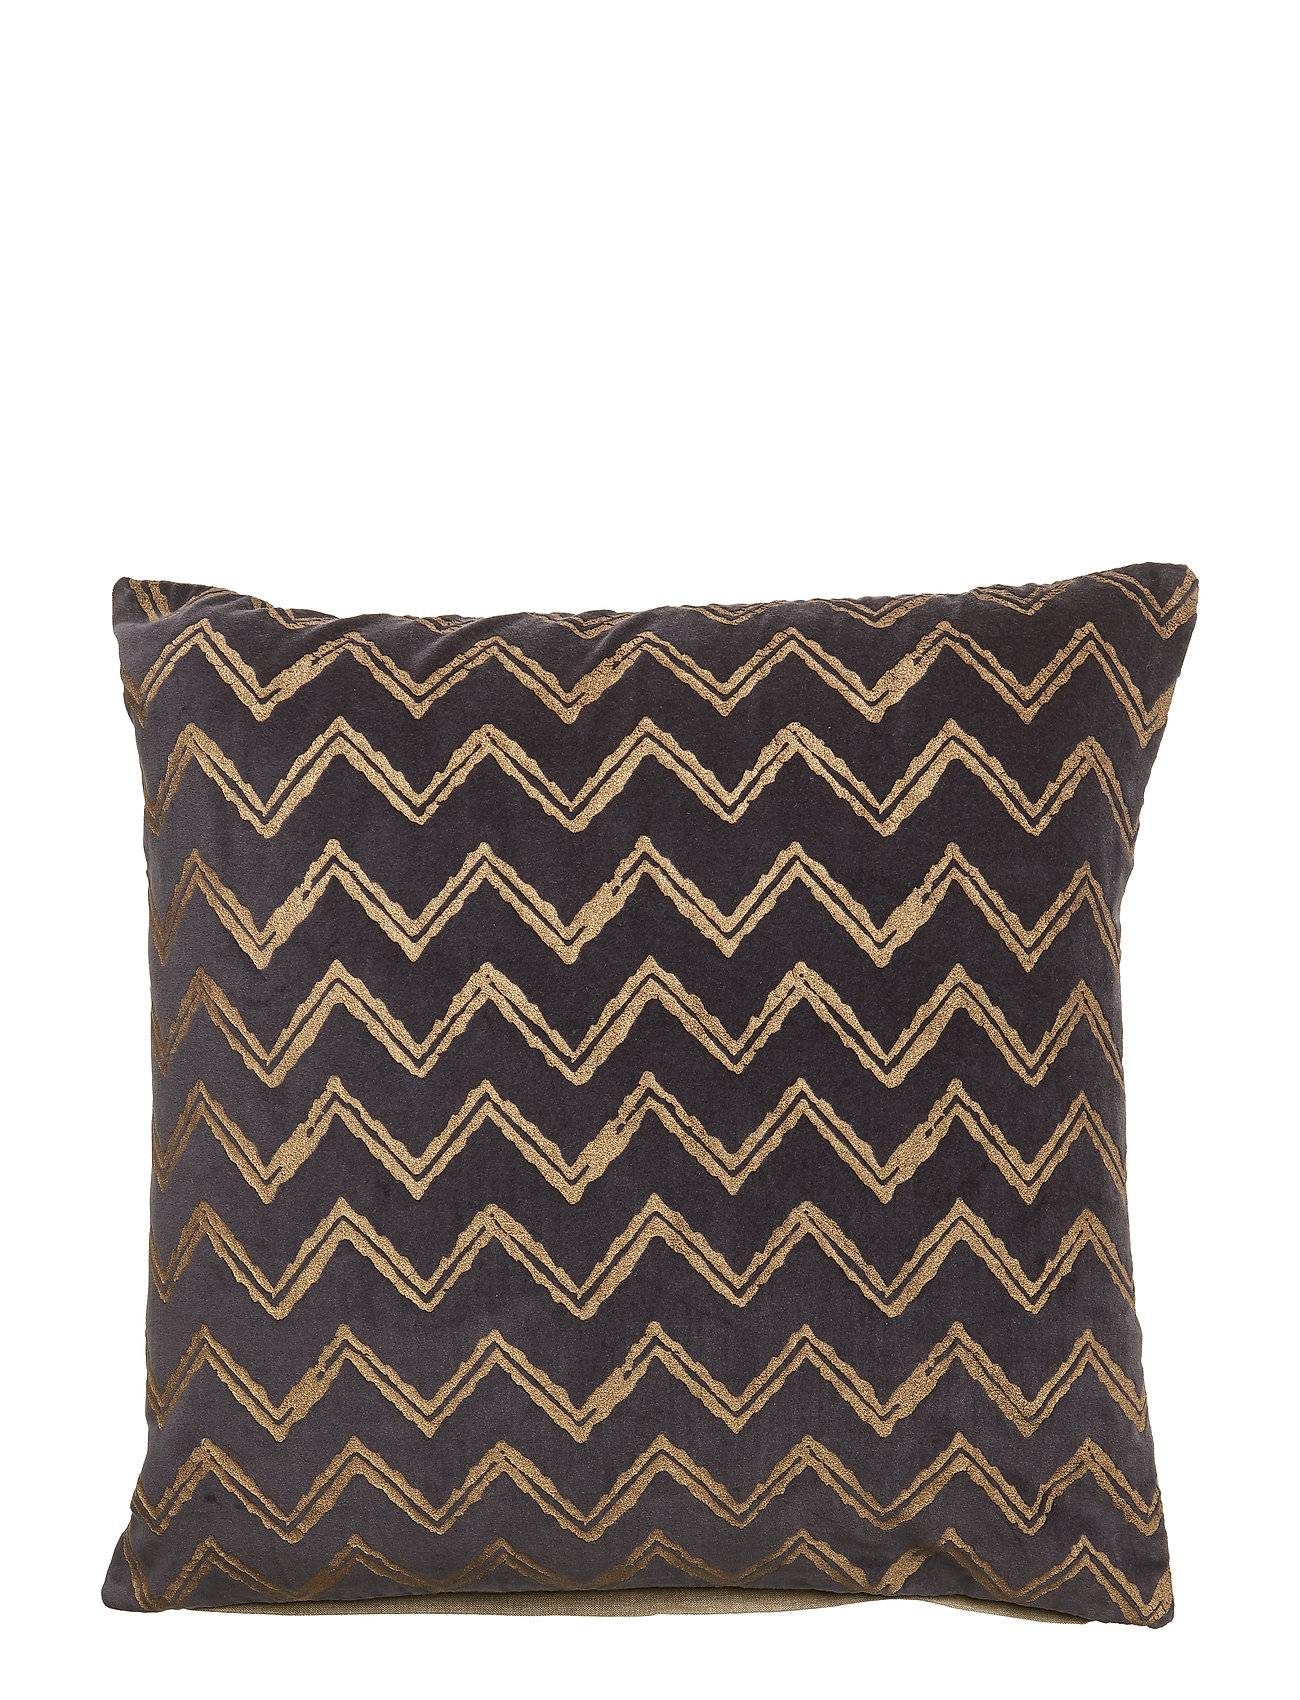 DAY Home Day Zigzag Cushion Cover